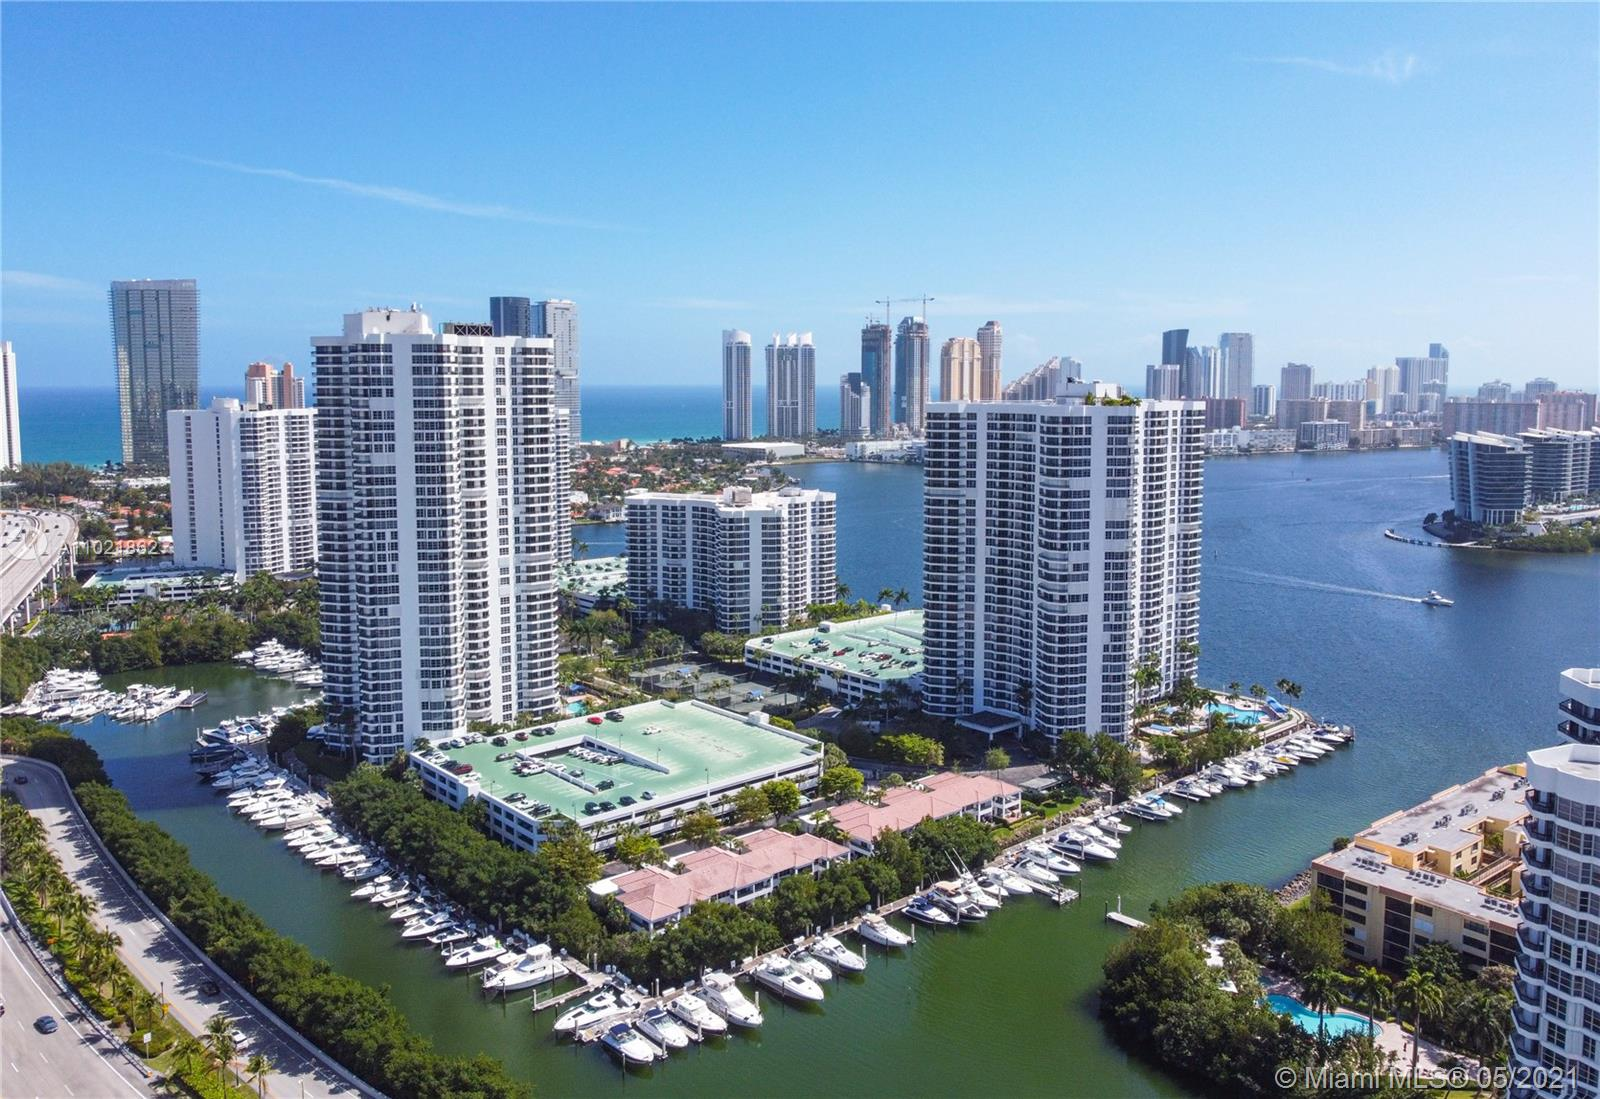 Mystic Pointe Tower 400 #702 - 3500 Mystic Pointe Dr #702, Aventura, FL 33180